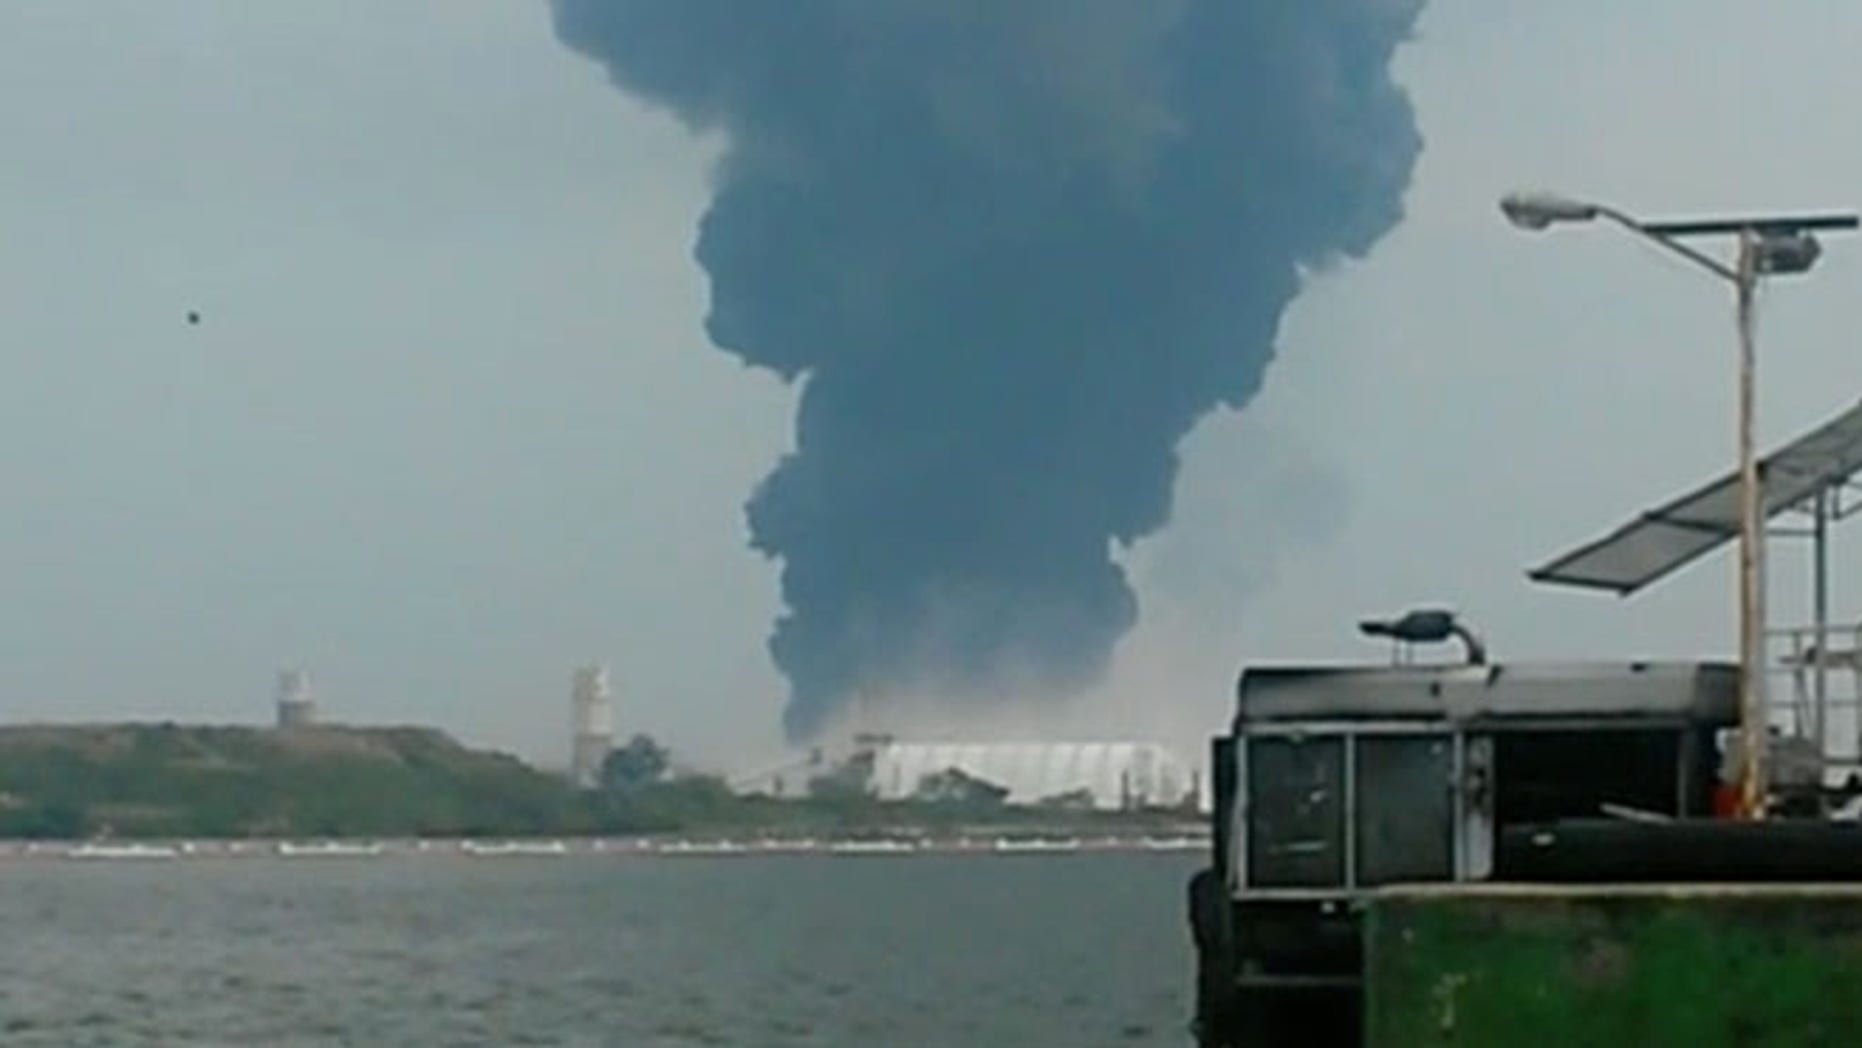 BEST QUALITY AVAILABLE  - In this video grab a large plume of smoke rises from the Mexican State oil company Petroleos Mexicanos' petrochemical plant after an explosion in Coatzacoalcos, Mexico, Wednesday, April 20, 2016. The explosion killed several people, injuring dozens and sending flames and a toxin-filled cloud into the air, officials said. (Inmel Enoc via AP)